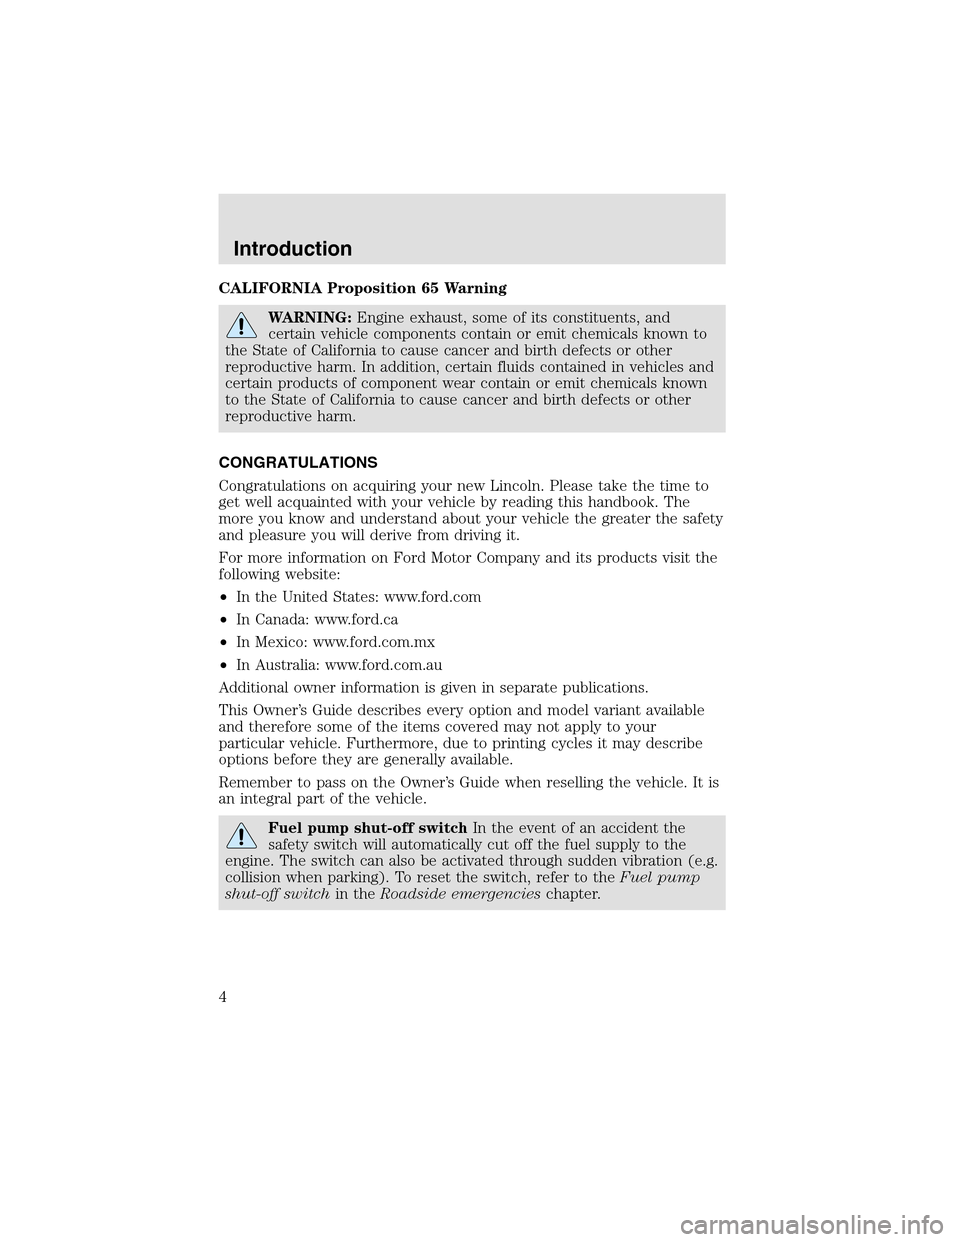 LINCOLN AVIATOR 2003  Owners Manual, Page 4